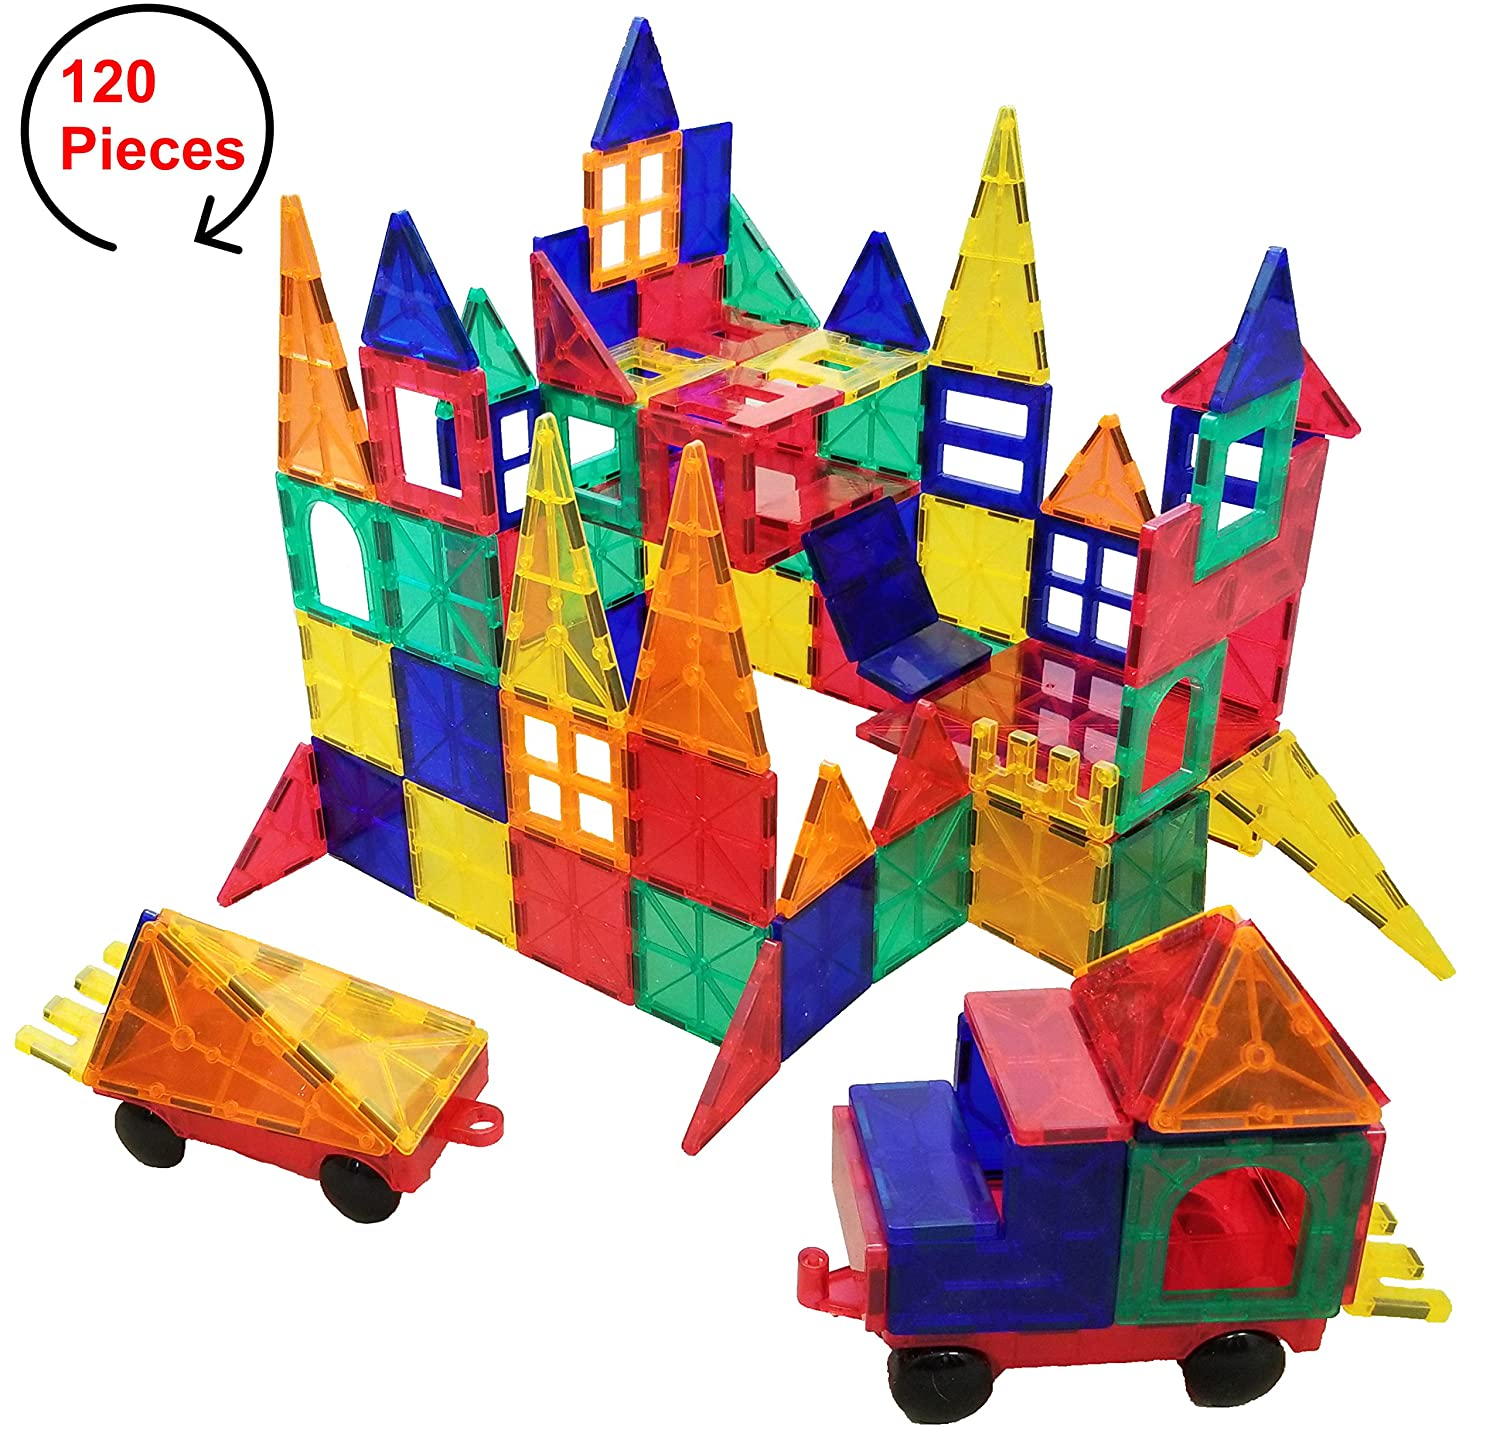 #1 STRONG - 120 Piece Magnetic Building Tiles Set for Kids - Magna Toy Blocks for Educational and Learning - Perfect gift for Boys or Girls Review